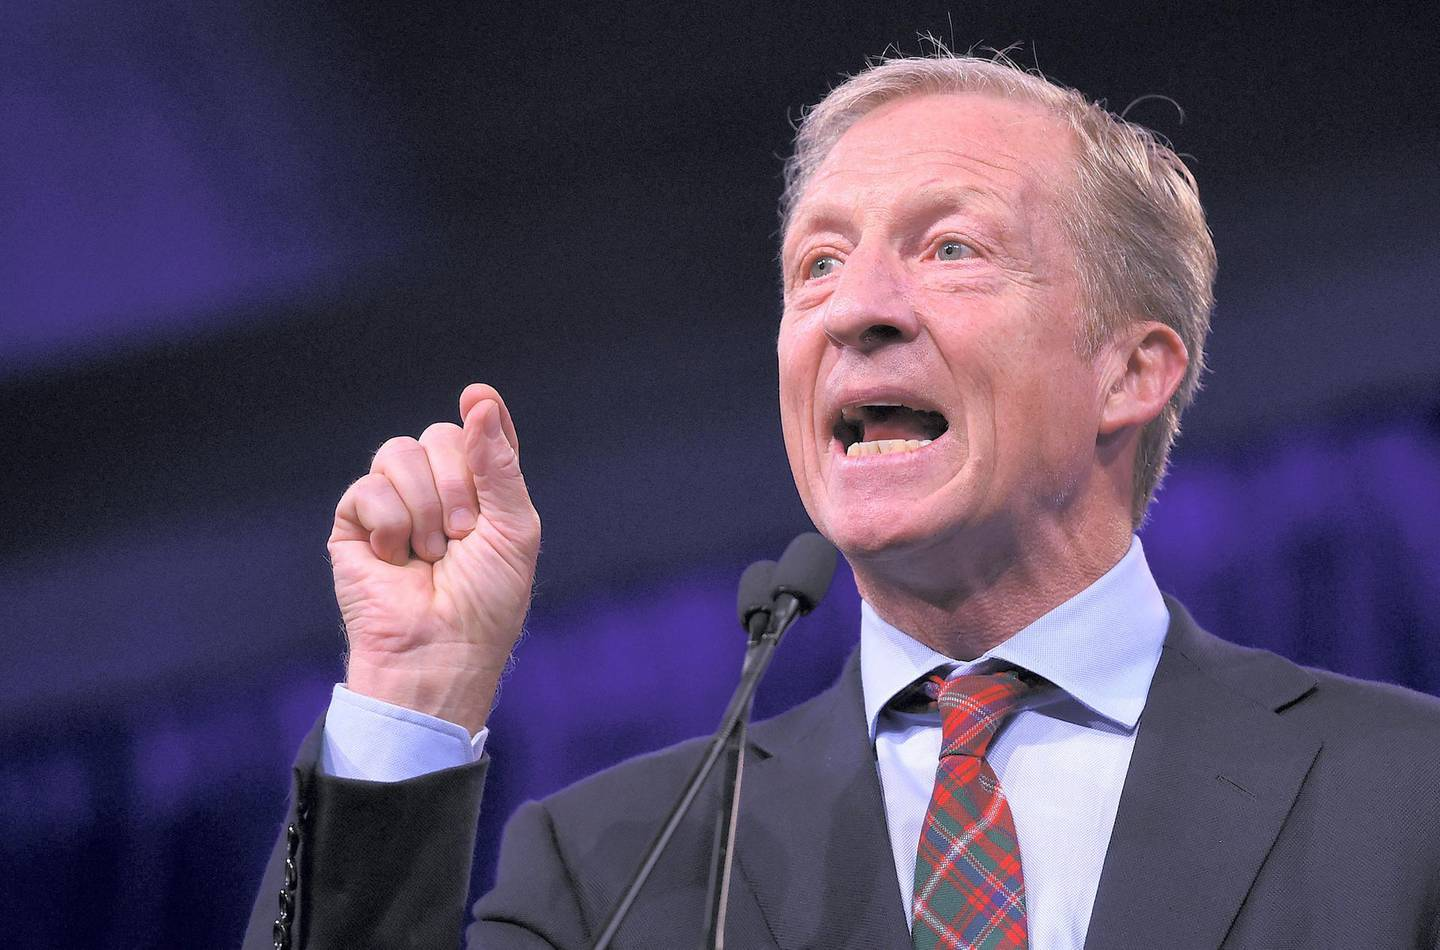 2020 US Democratic Presidential hopeful US billionaire philanthropist Tom Steyer speaks on-stage during the Democratic National Committee's summer meeting in San Francisco, California on August 23, 2019. (Photo by JOSH EDELSON / AFP)